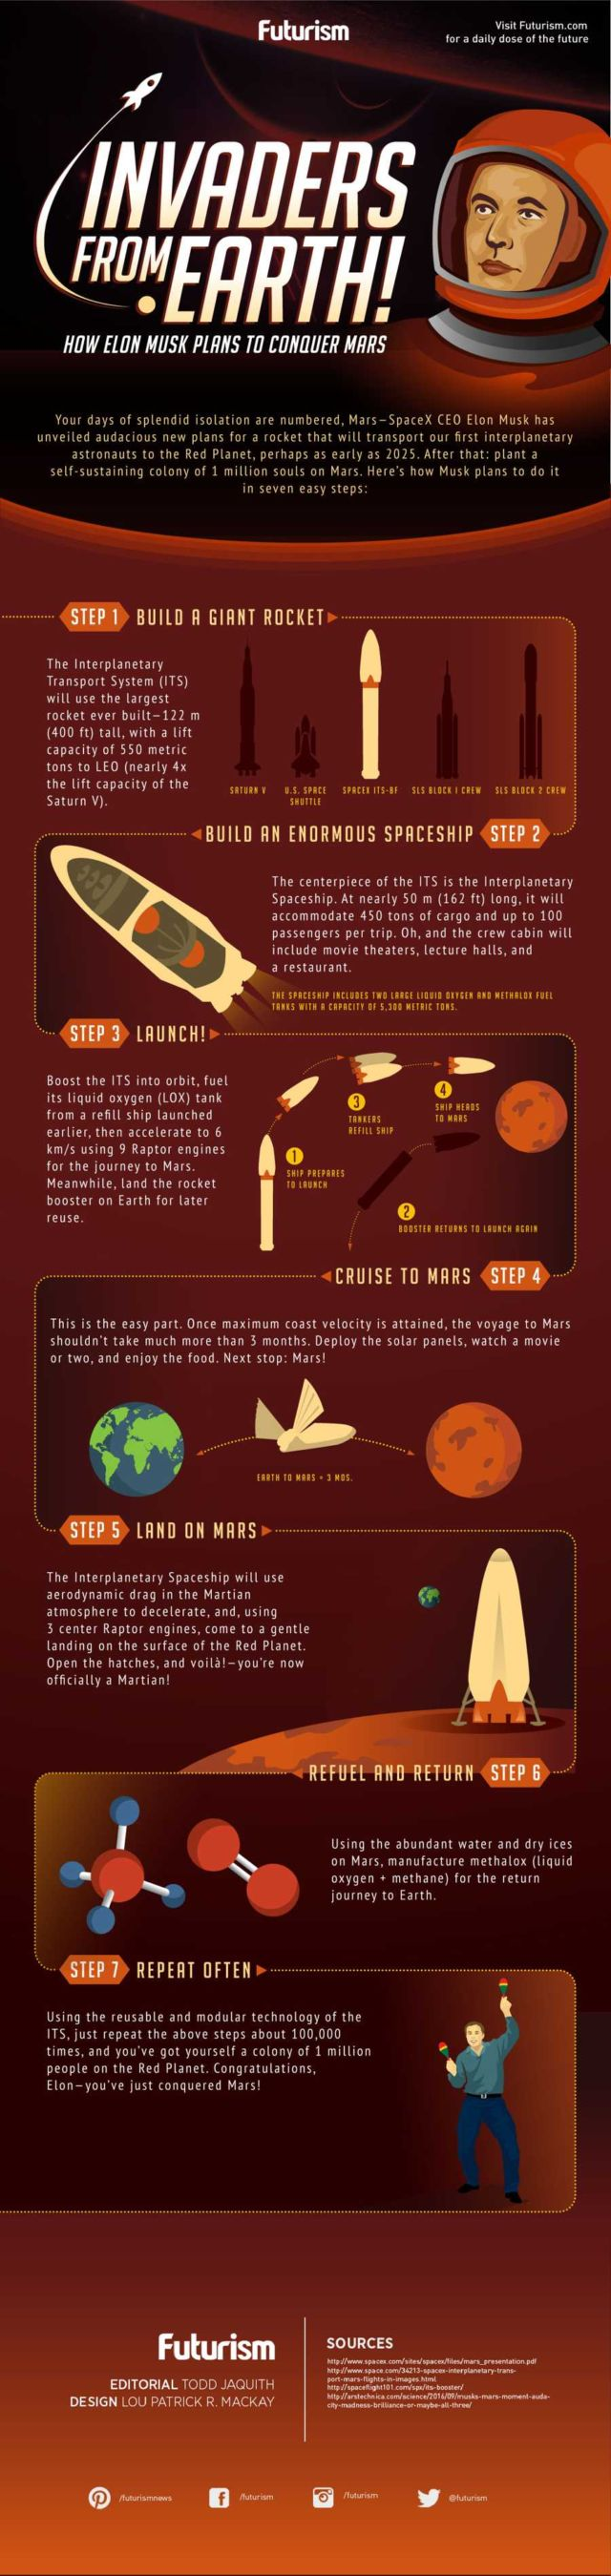 Mars- Invaders from Earth infographic